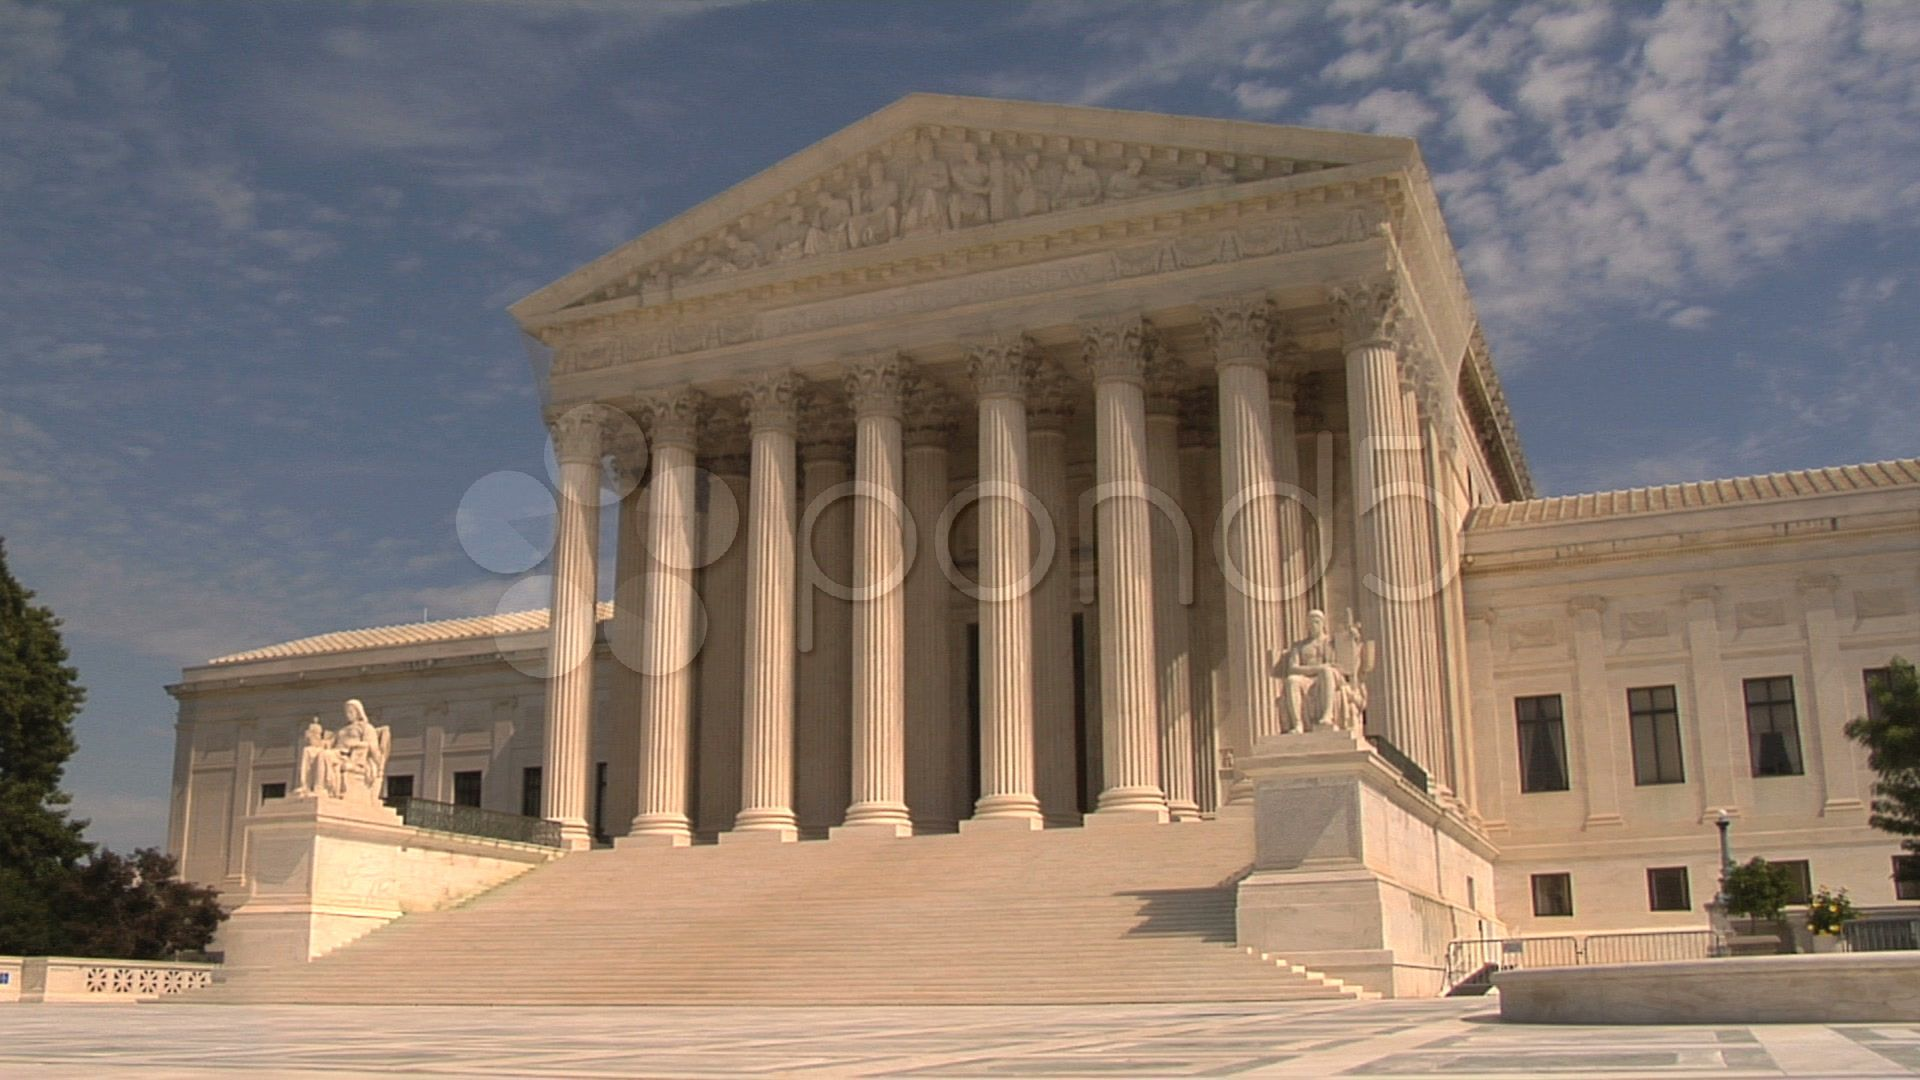 Us Supreme Court Time Lapse Stock Footage Time Court Supreme Footage Us Supreme Court Supreme Court Time